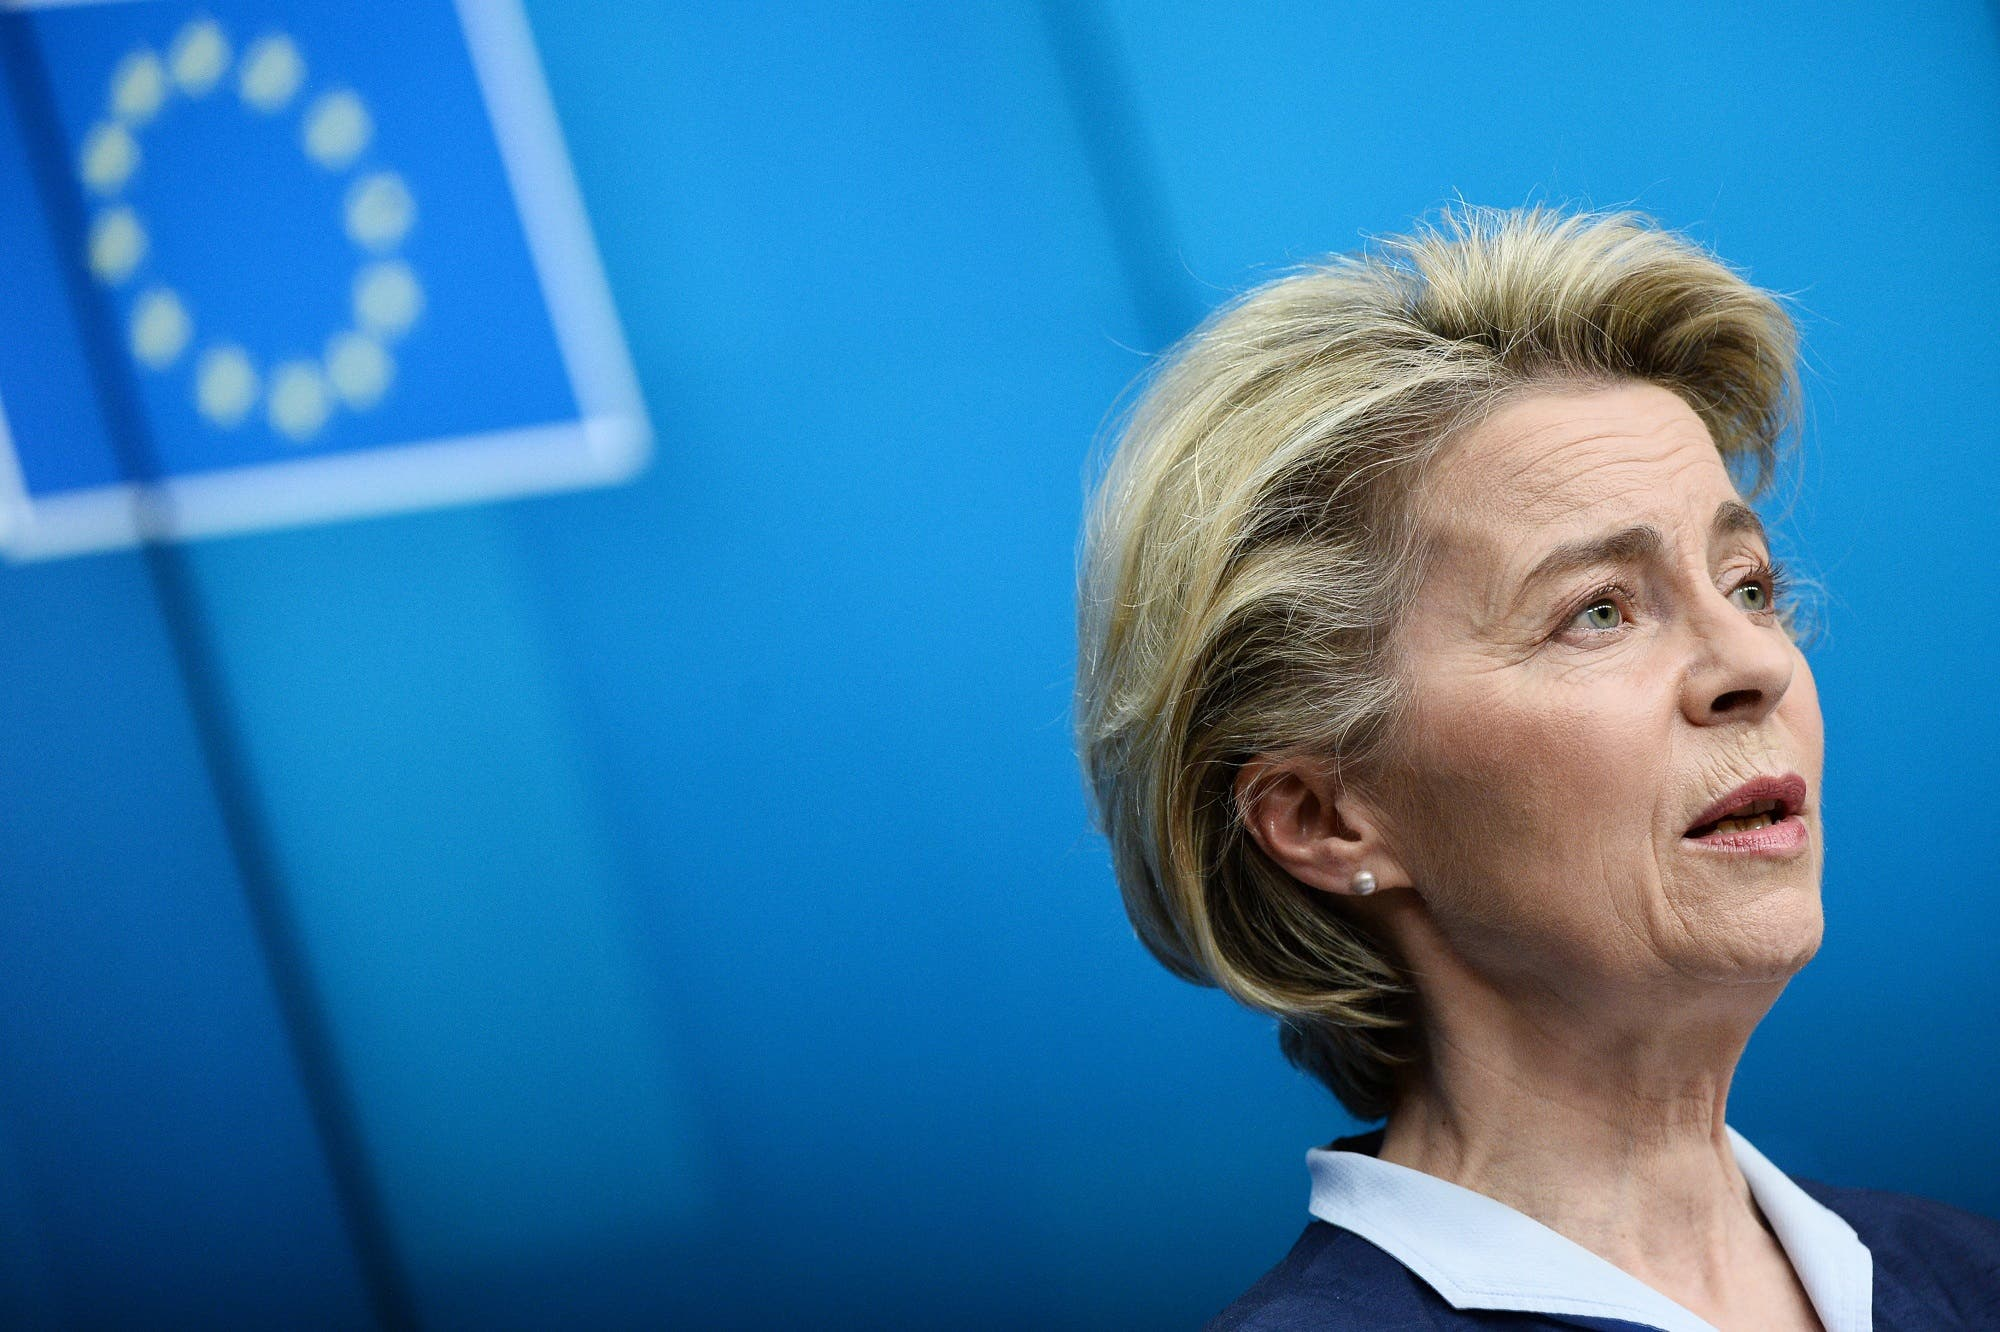 European Union: Our relationship with America is very important